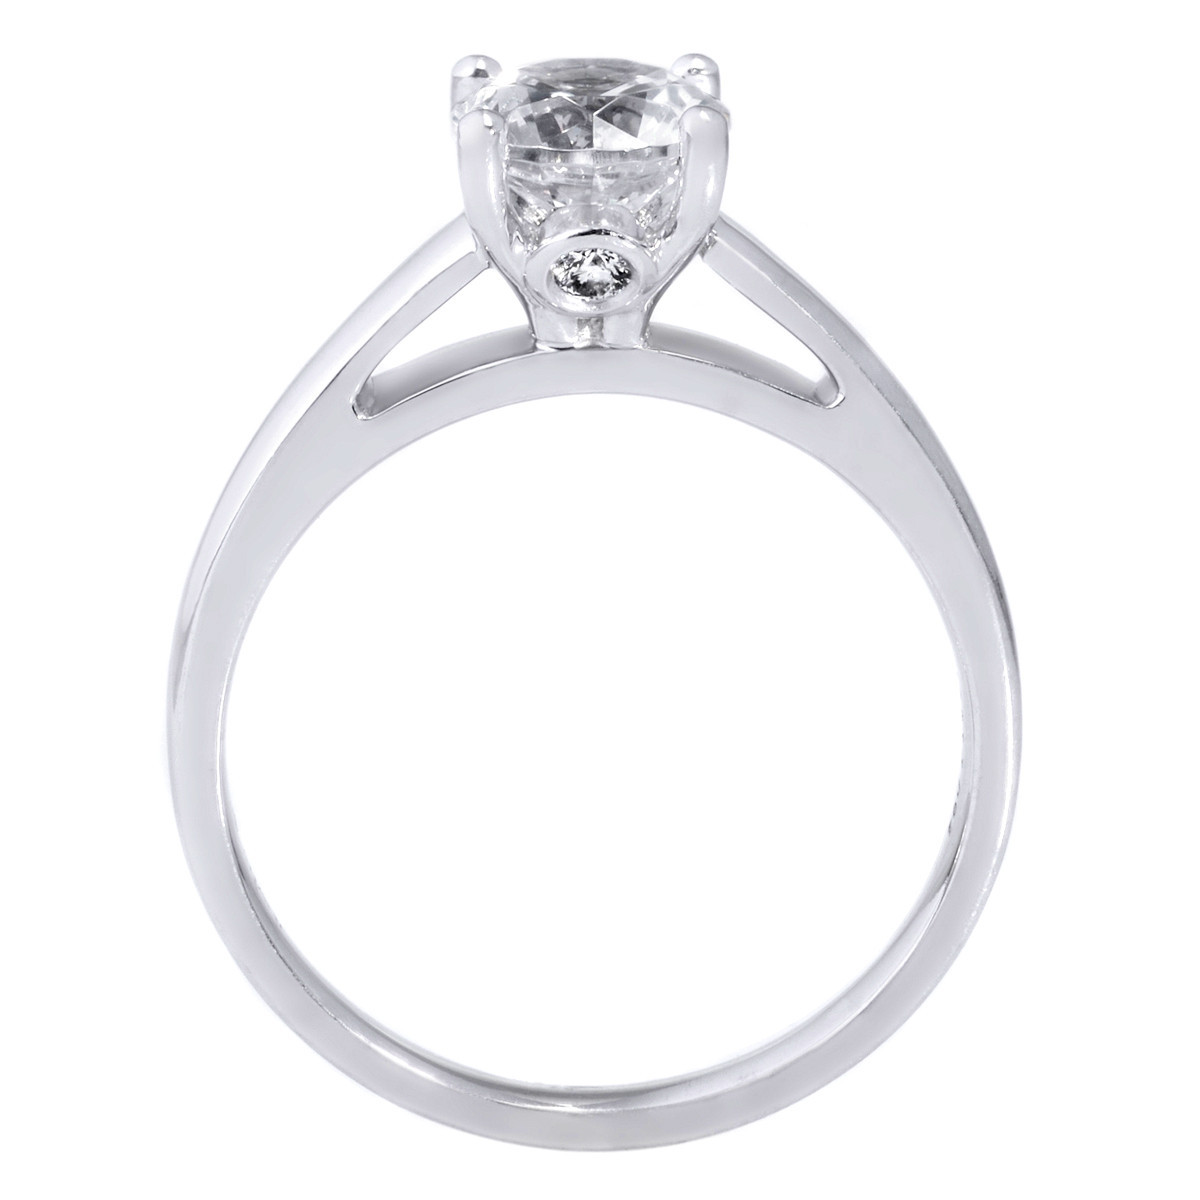 18K White Gold Cathedral Solitaire Engagement Ring with Surprise Diamonds